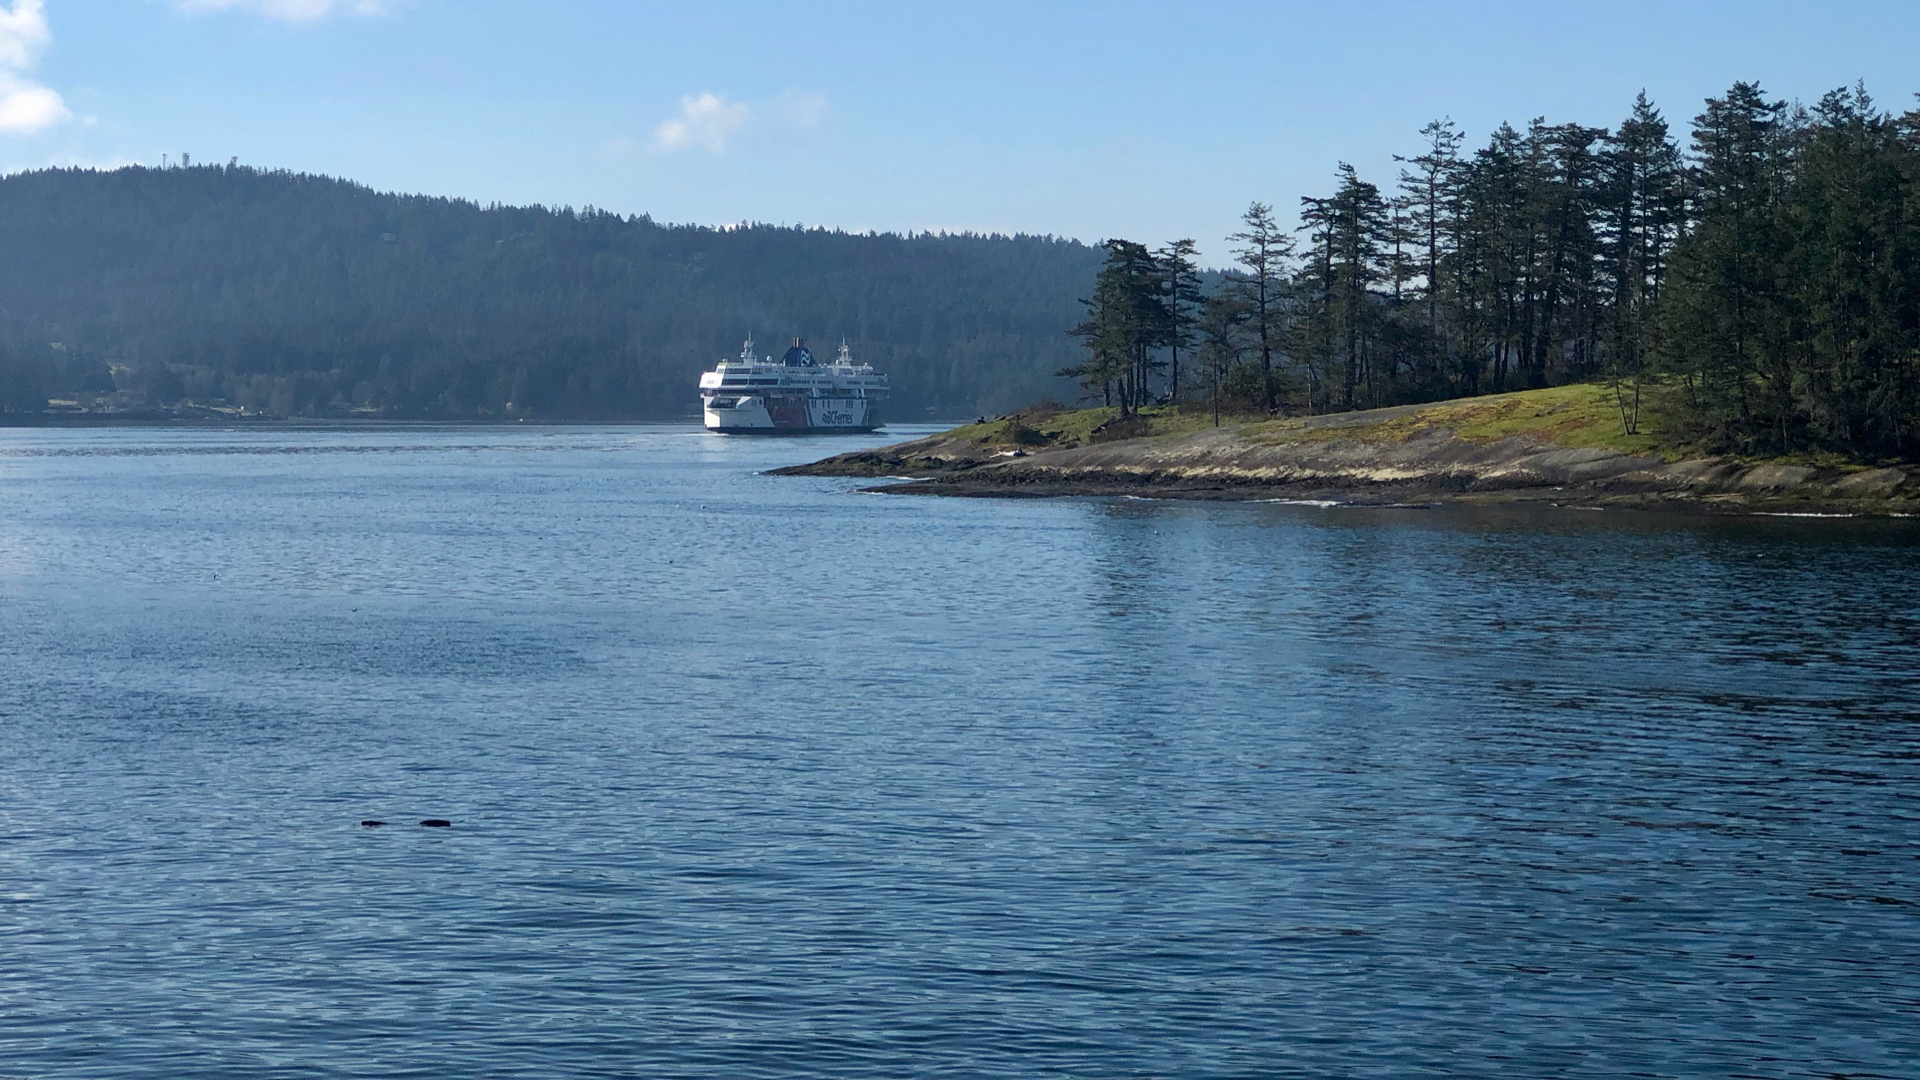 It was a gorgeous day, as we watched a different ferry heading into active pass, from the Salish Orca.